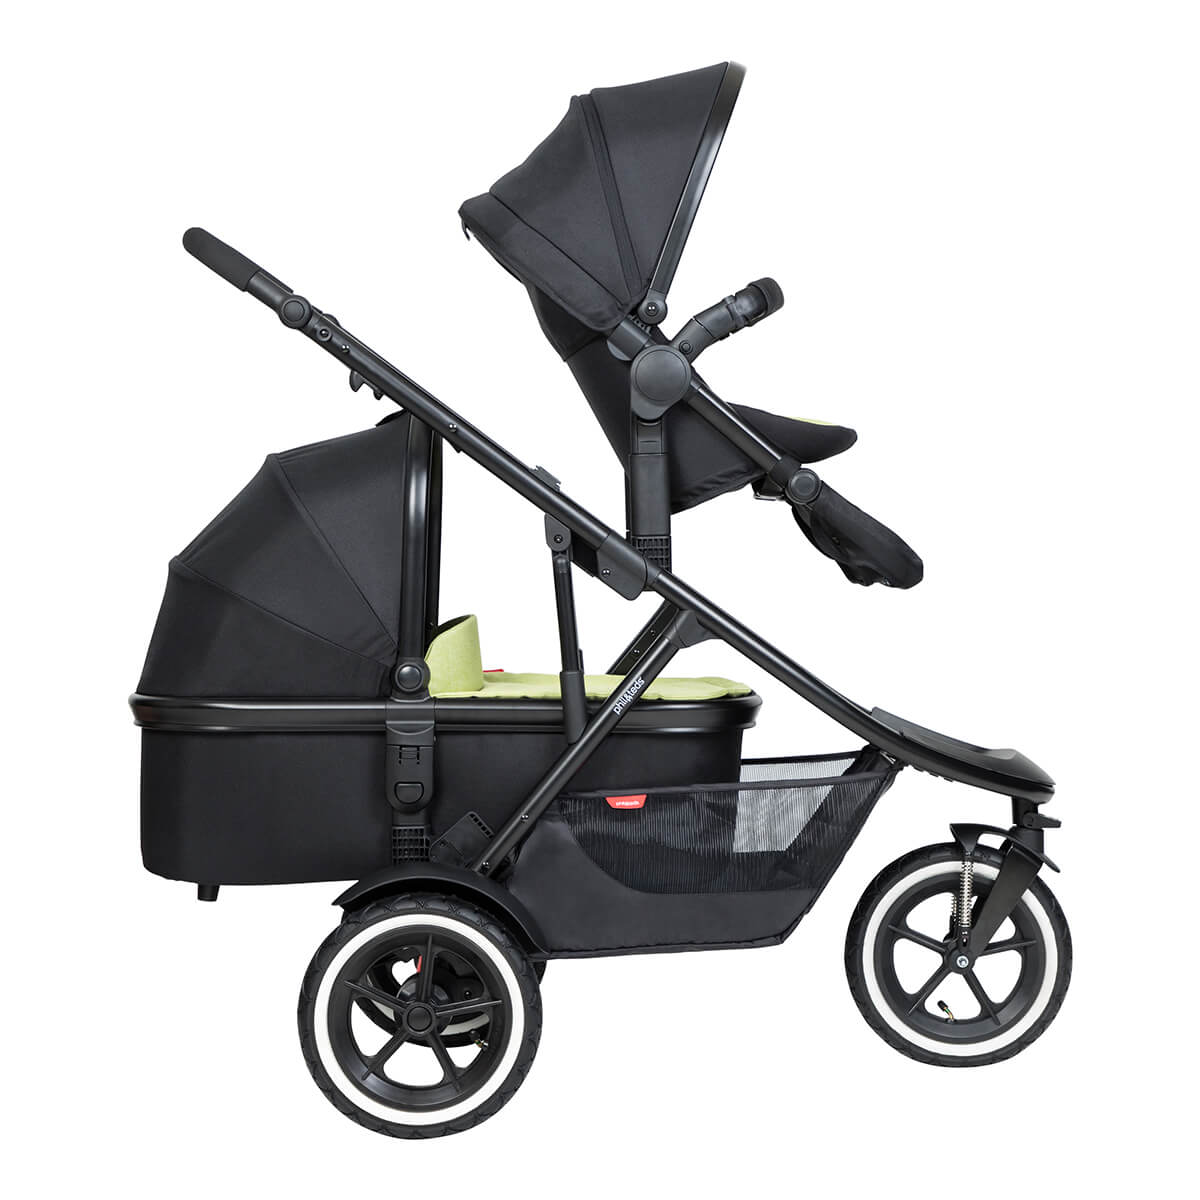 https://cdn.accentuate.io/4509866524769/19793939726506/philteds-sport-buggy-with-double-kit-extended-clip-and-snug-carrycot-side-view-v1626485300927.jpg?1200x1200